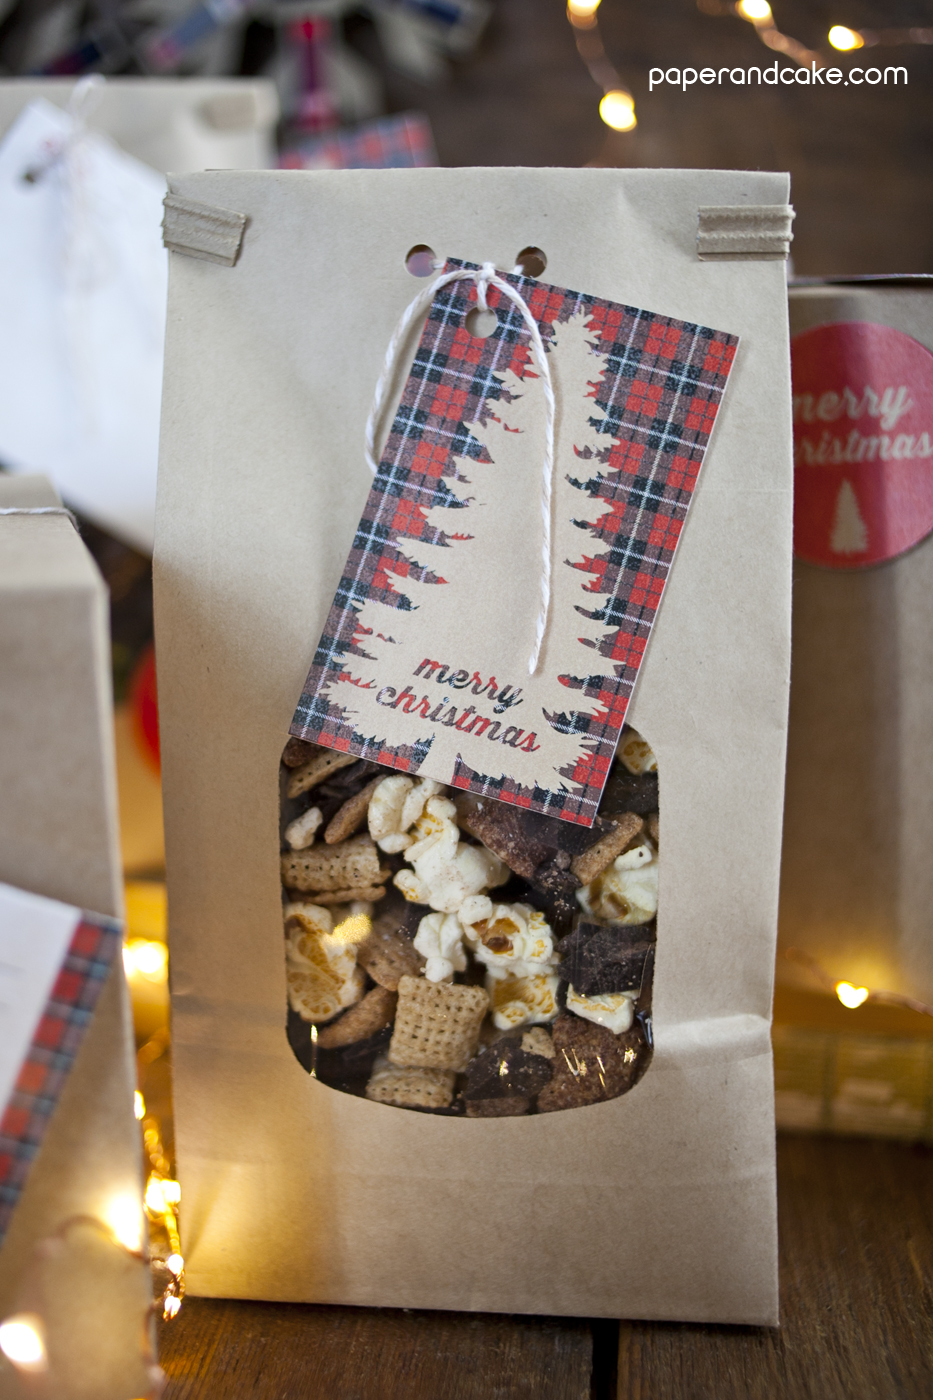 Holiday Baked Goods Packaging Paper And Cake Paper And Cake